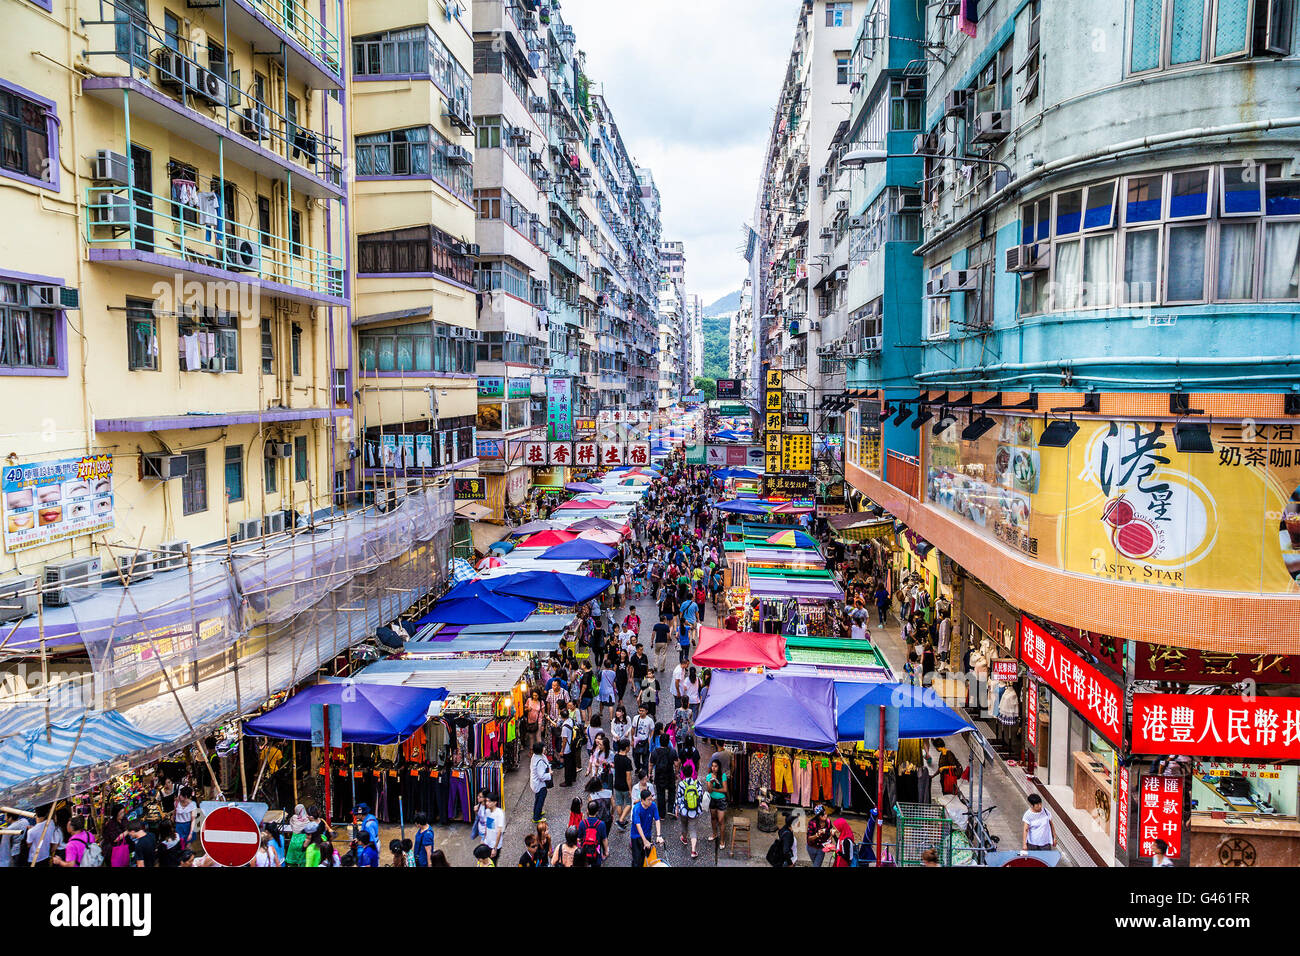 HONG KONG - JUL 26, 2015: The busy Fa Yuen street market in Hong Kong is popular with tourists and locals alike. - Stock Image